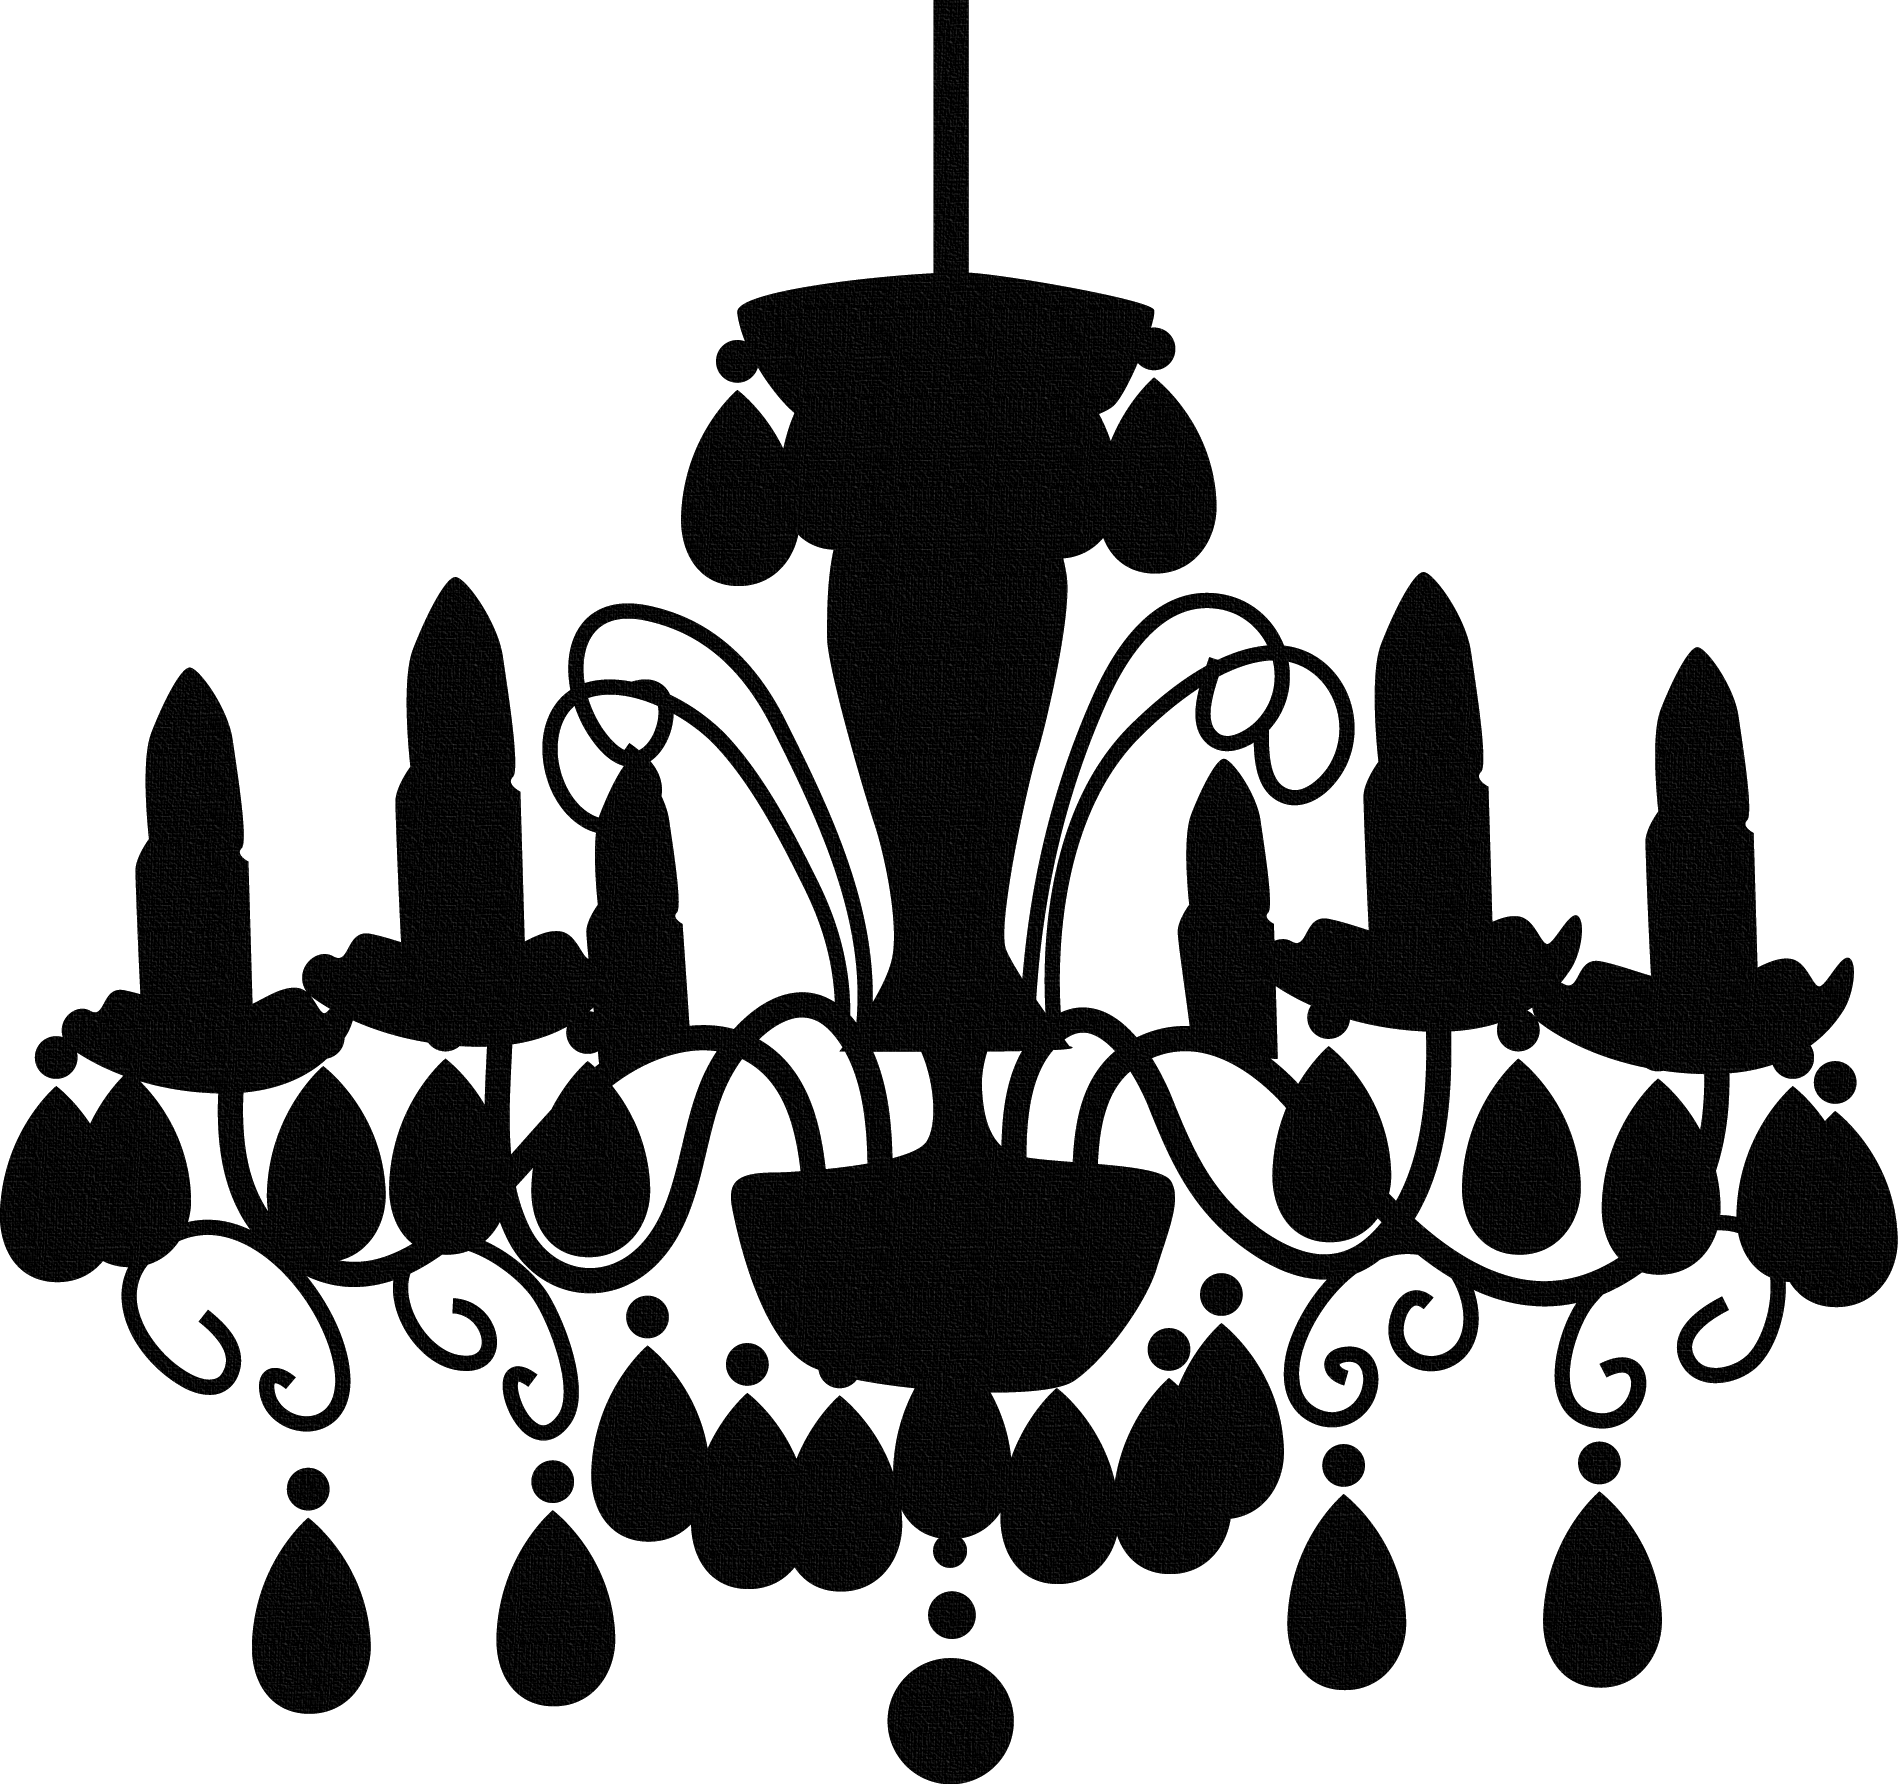 clipart freeuse download Chandelier clipart draw. Vectors by berrykissed on.